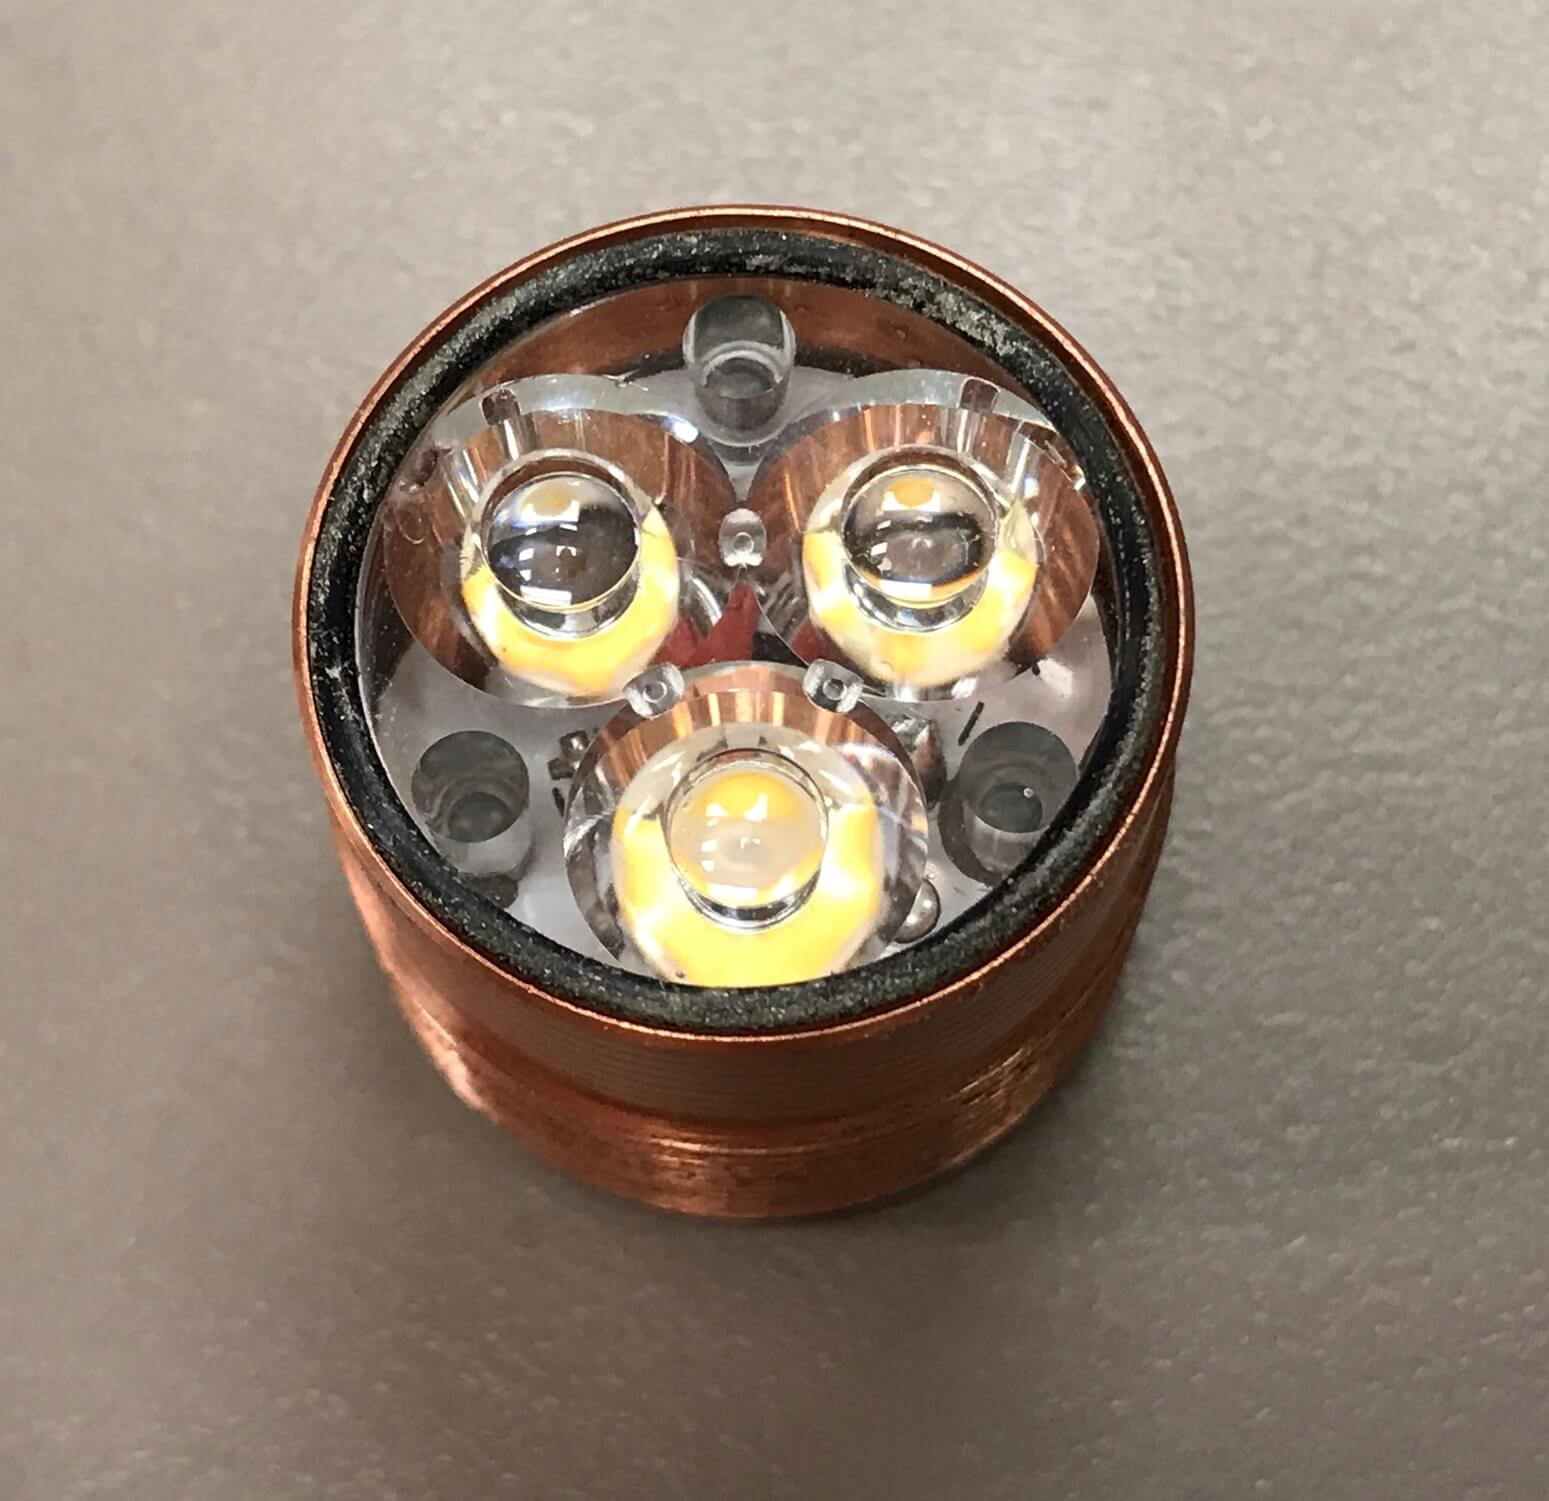 zeroair_reviews_venom_orion_brass_nichia_77.jpg